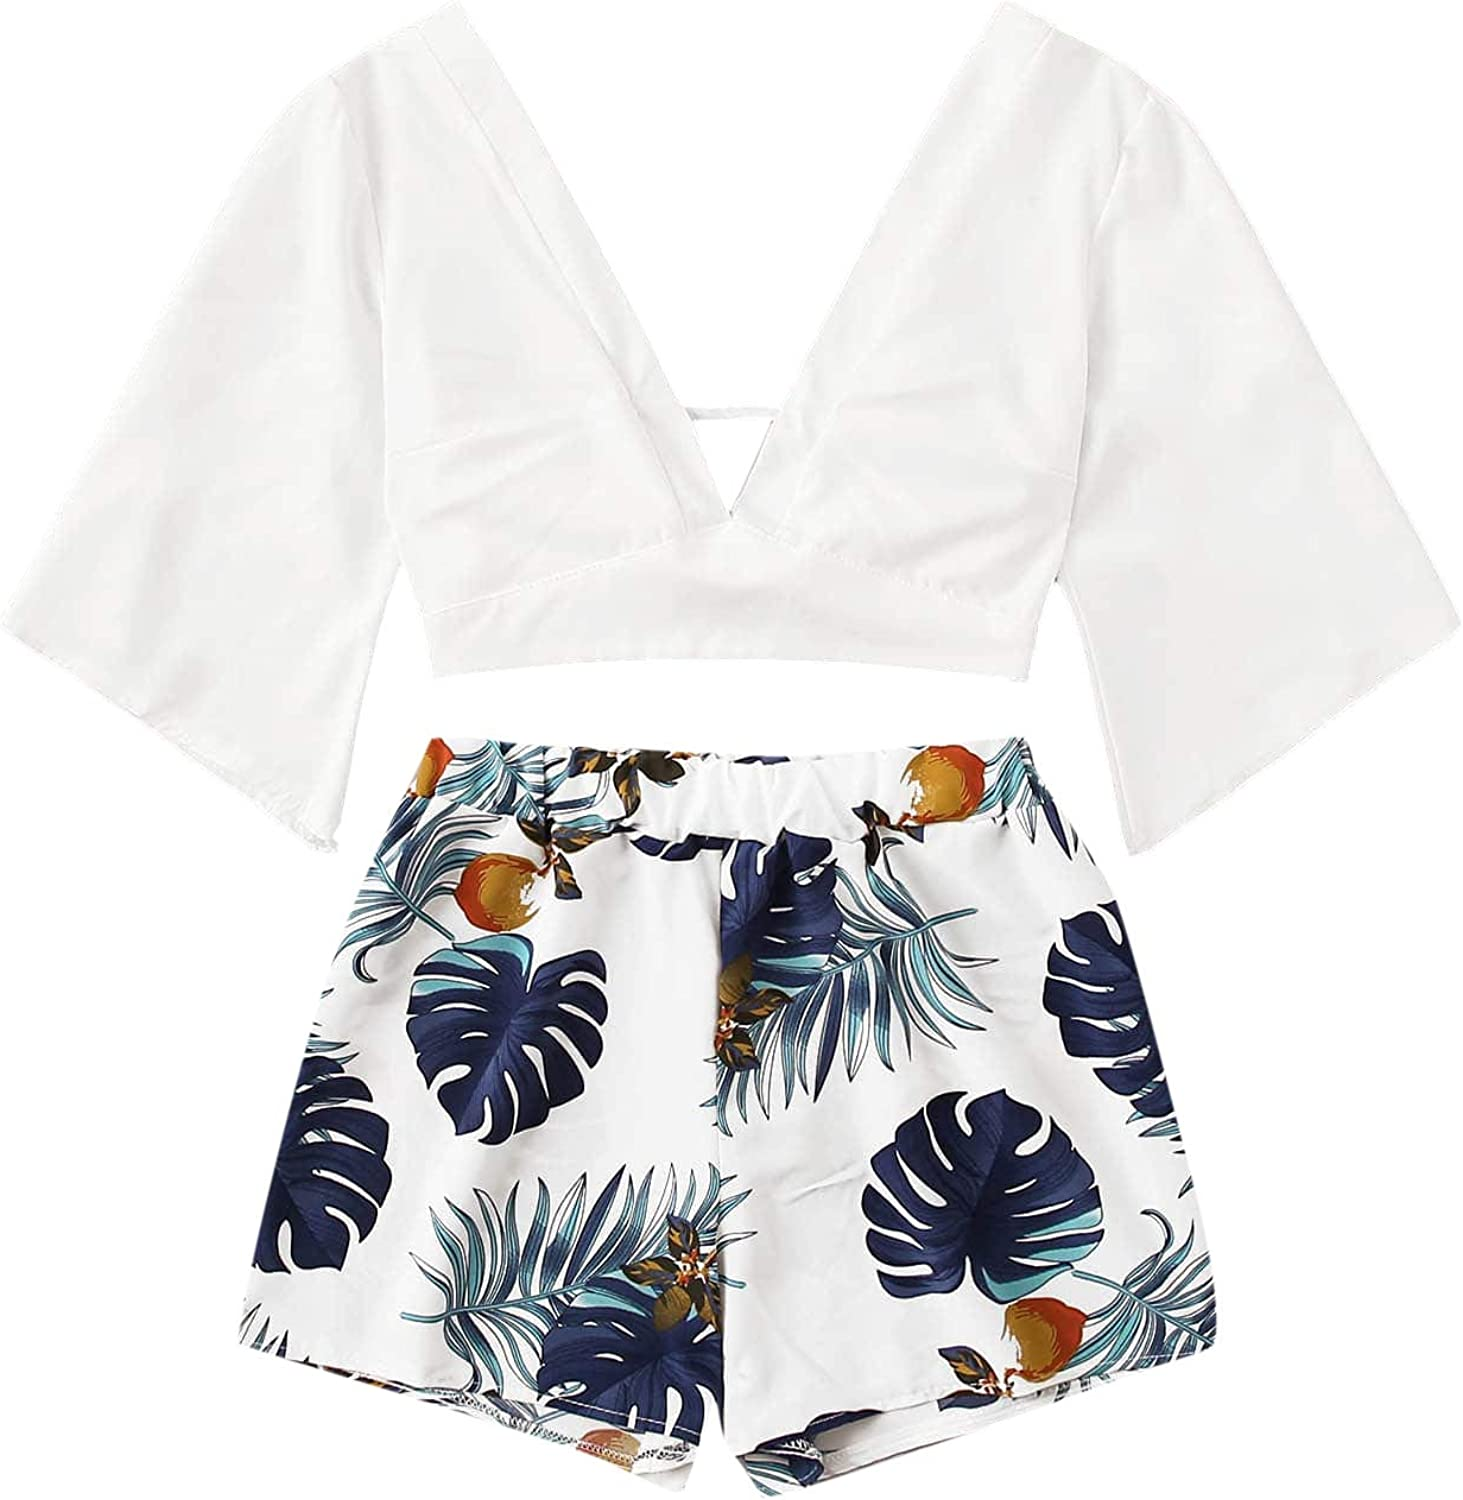 Milumia Women's Beach Two Piece Outfit Tie Back Tropical Plunging Neck Crop Top Shorts Set